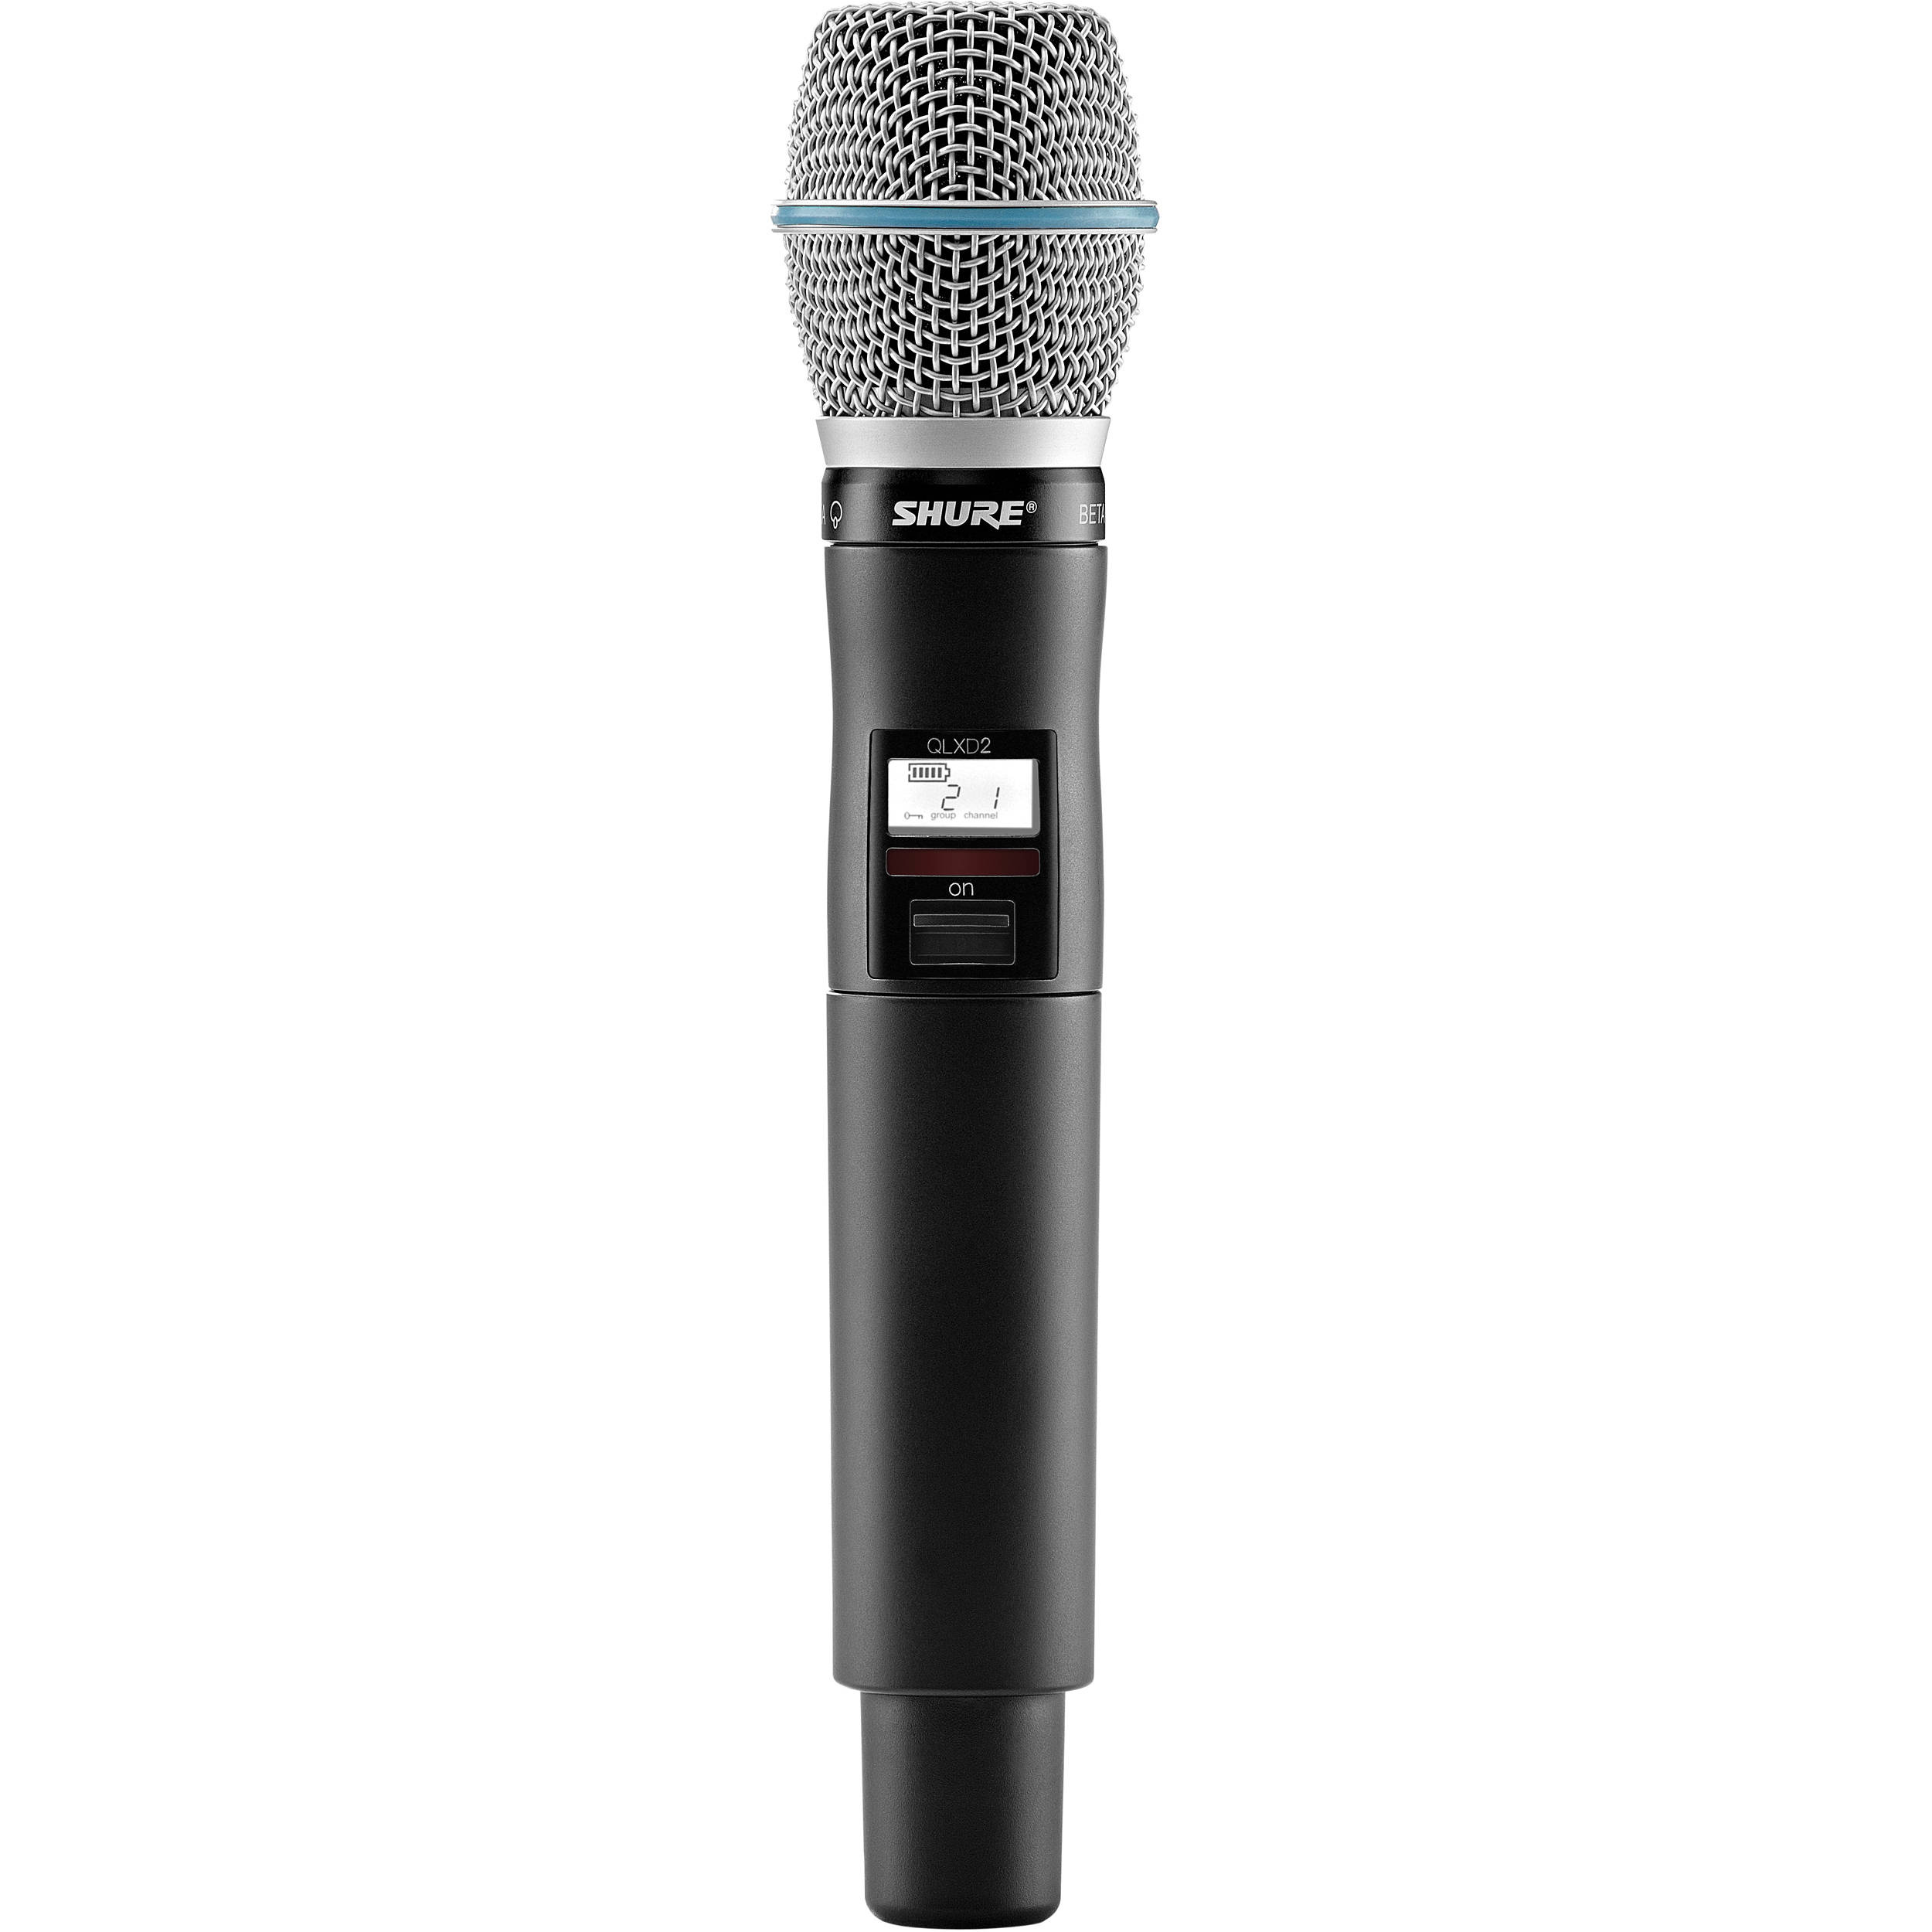 Shure QLXD2-BETA87A Handheld Wireless Transmitter with Beta 57A Capsule (H51:534 to 598 MHz)